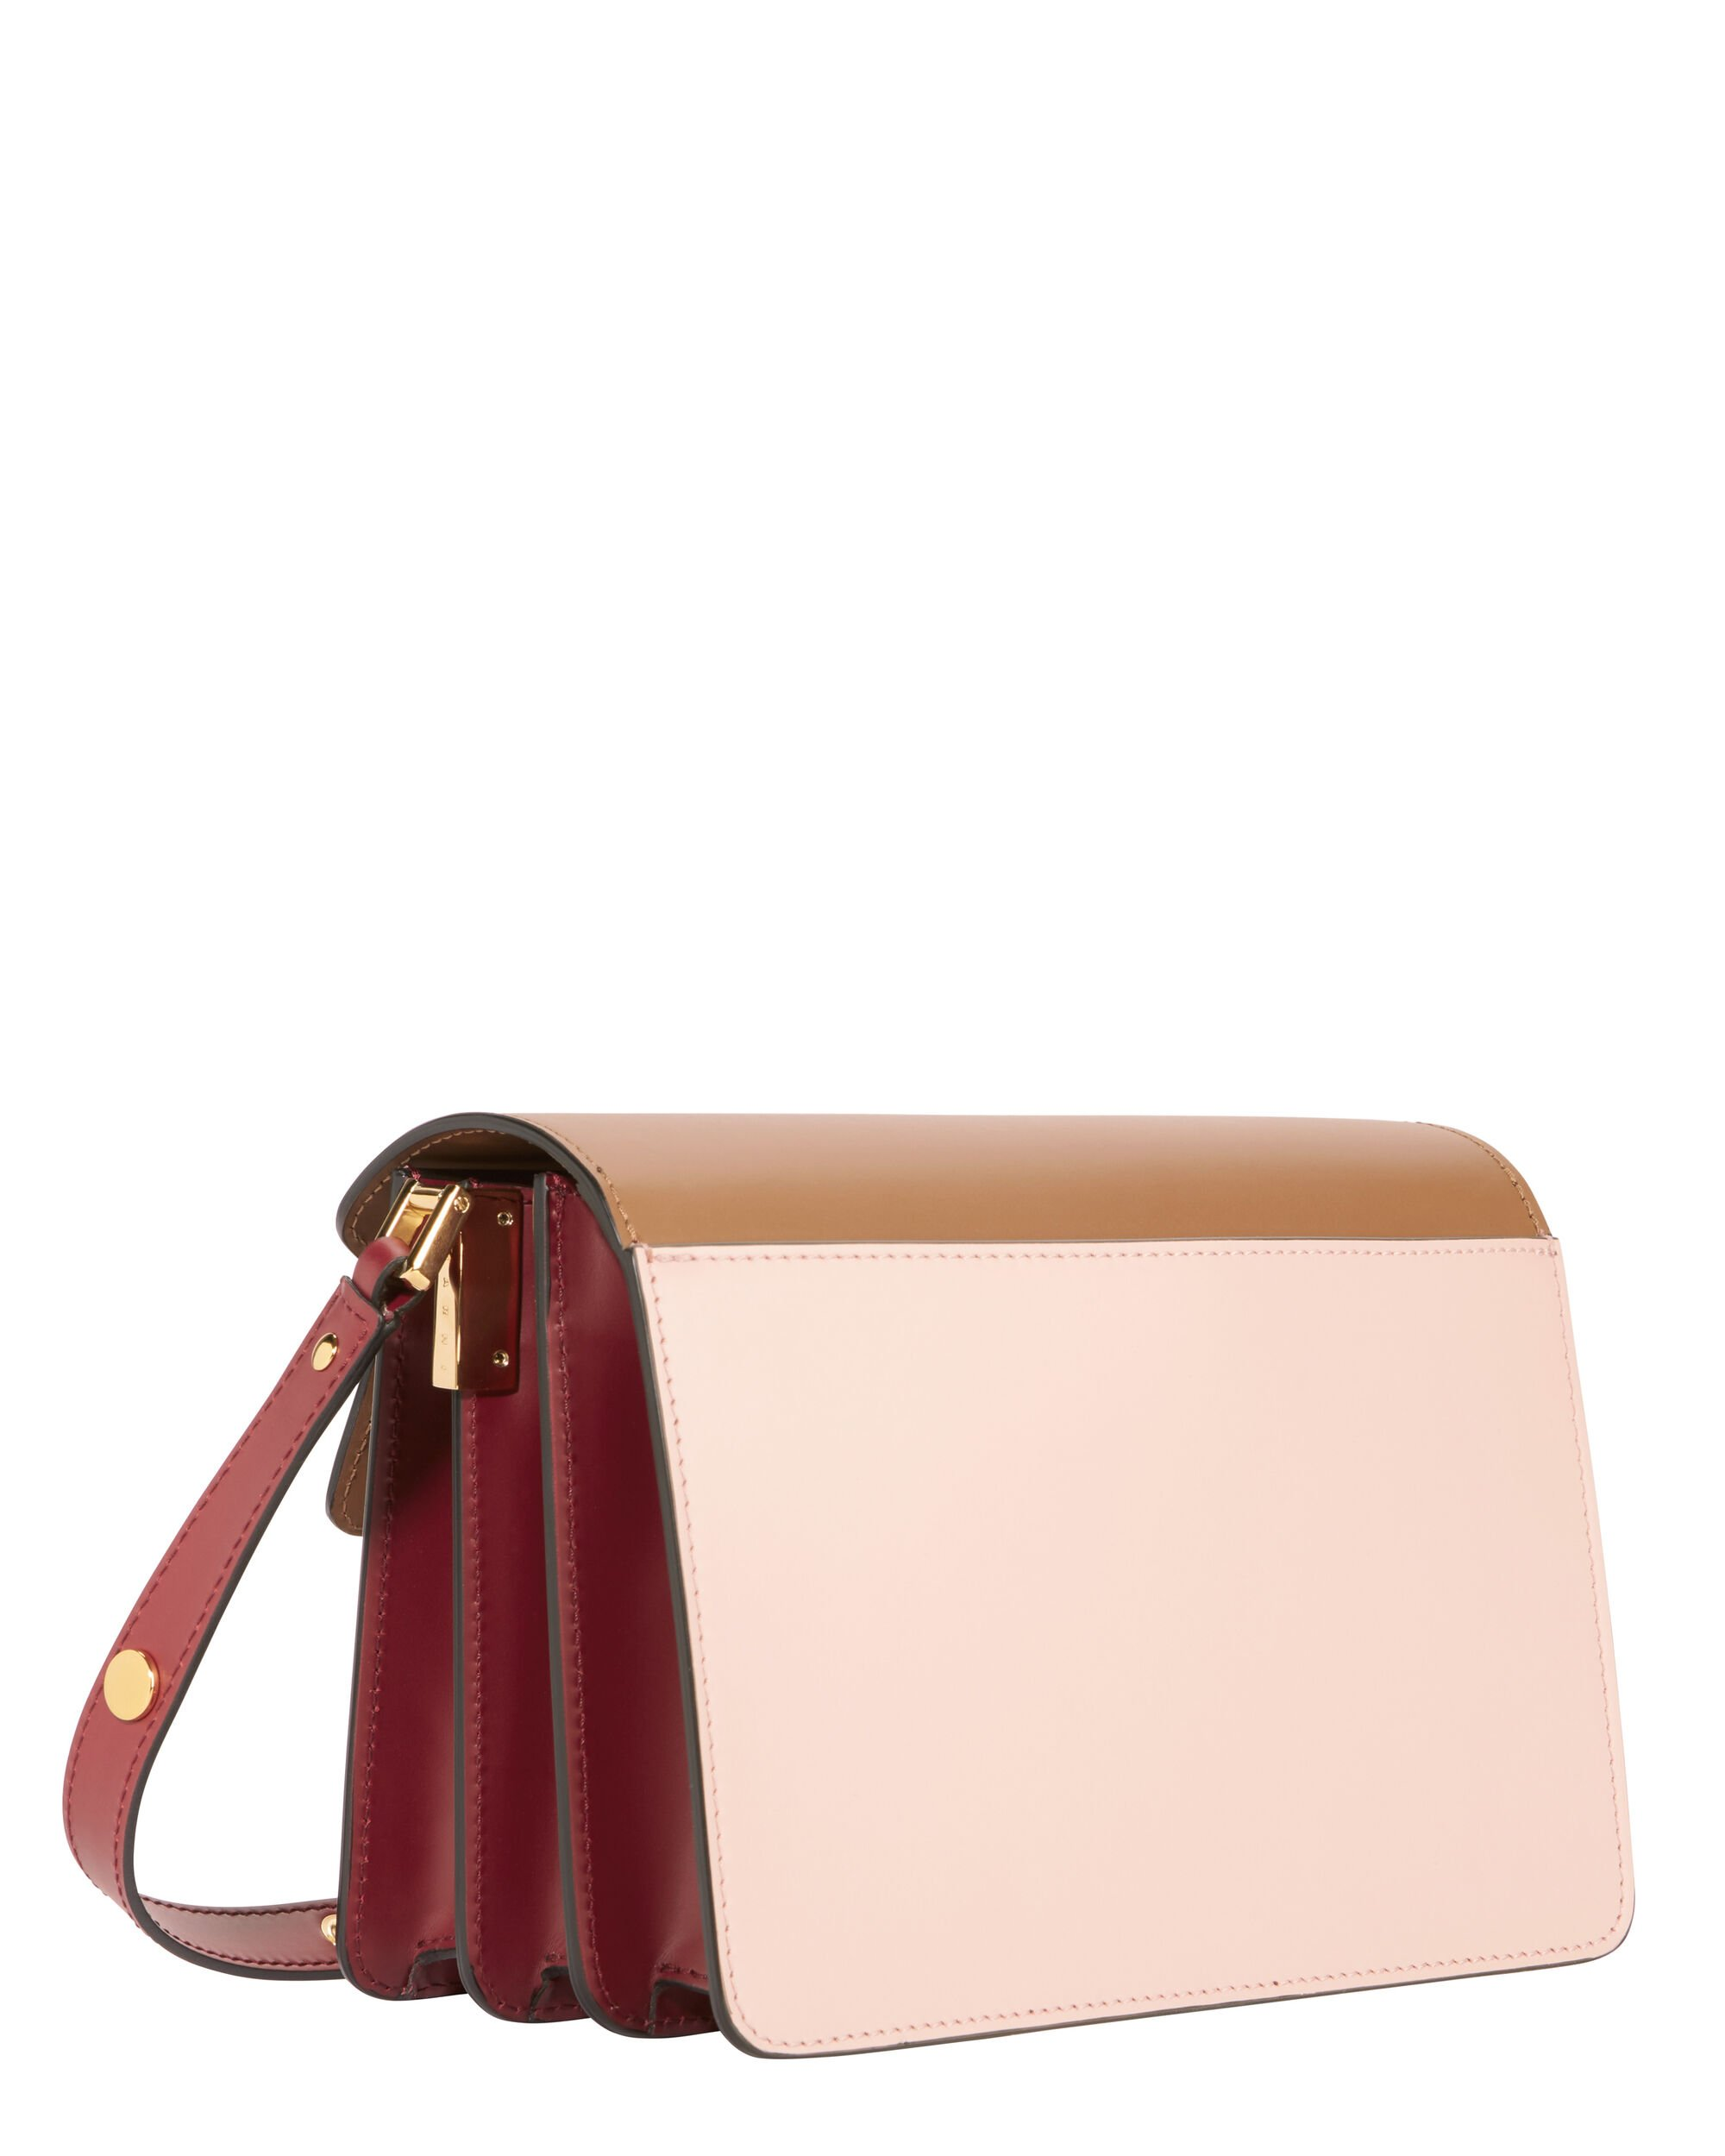 Trunk Colorblocked Bag, MULTI, hi-res